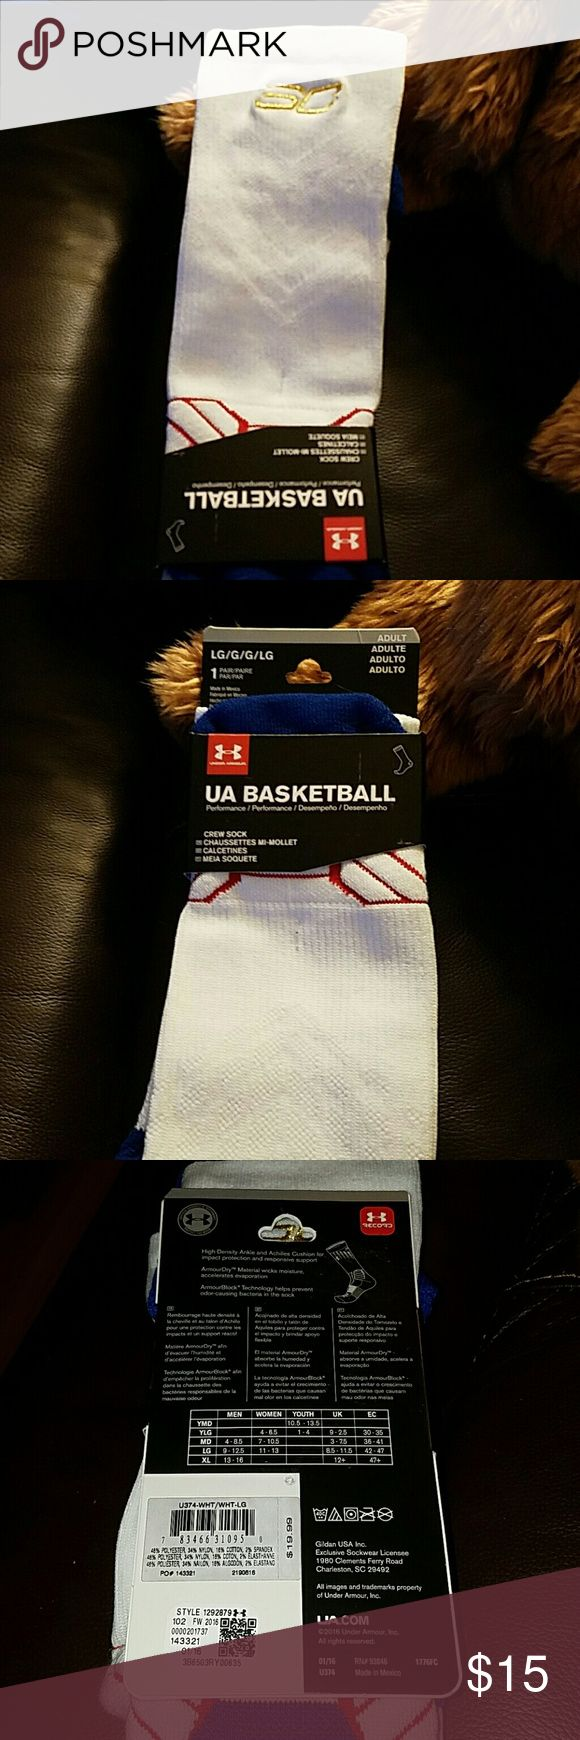 Stephen Curry basketball socks, large, nwt Stephen Curry basketball socks, nwt,  large. High density ankle and Achilles cushion for impact protection and responsive support, white/blue Under Armour Underwear & Socks Athletic Socks